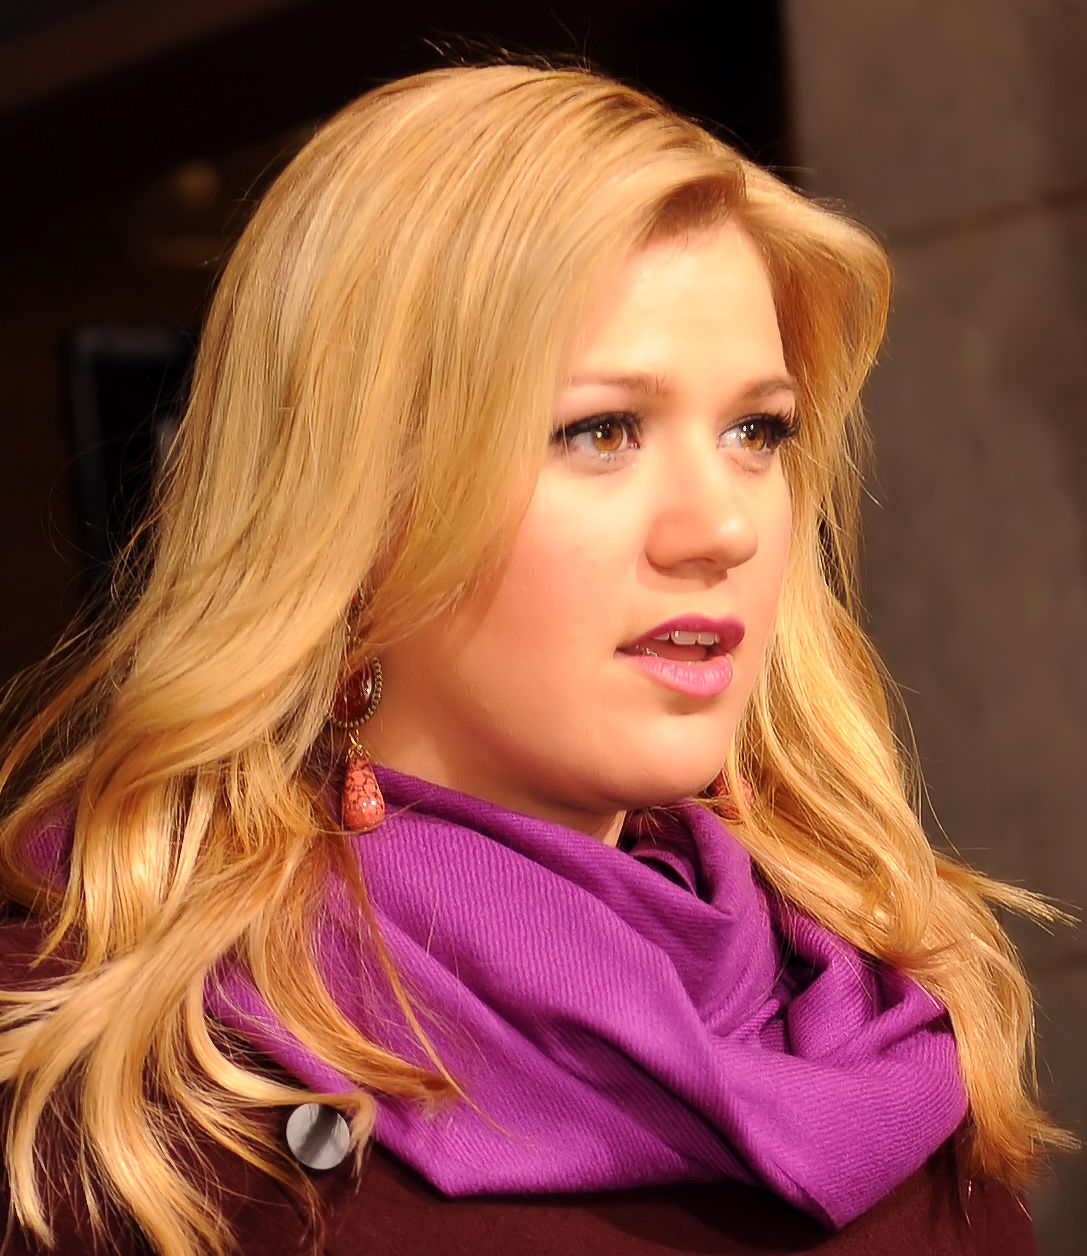 43. Kelly Clarkson 43. Kelly Clarkson new pictures